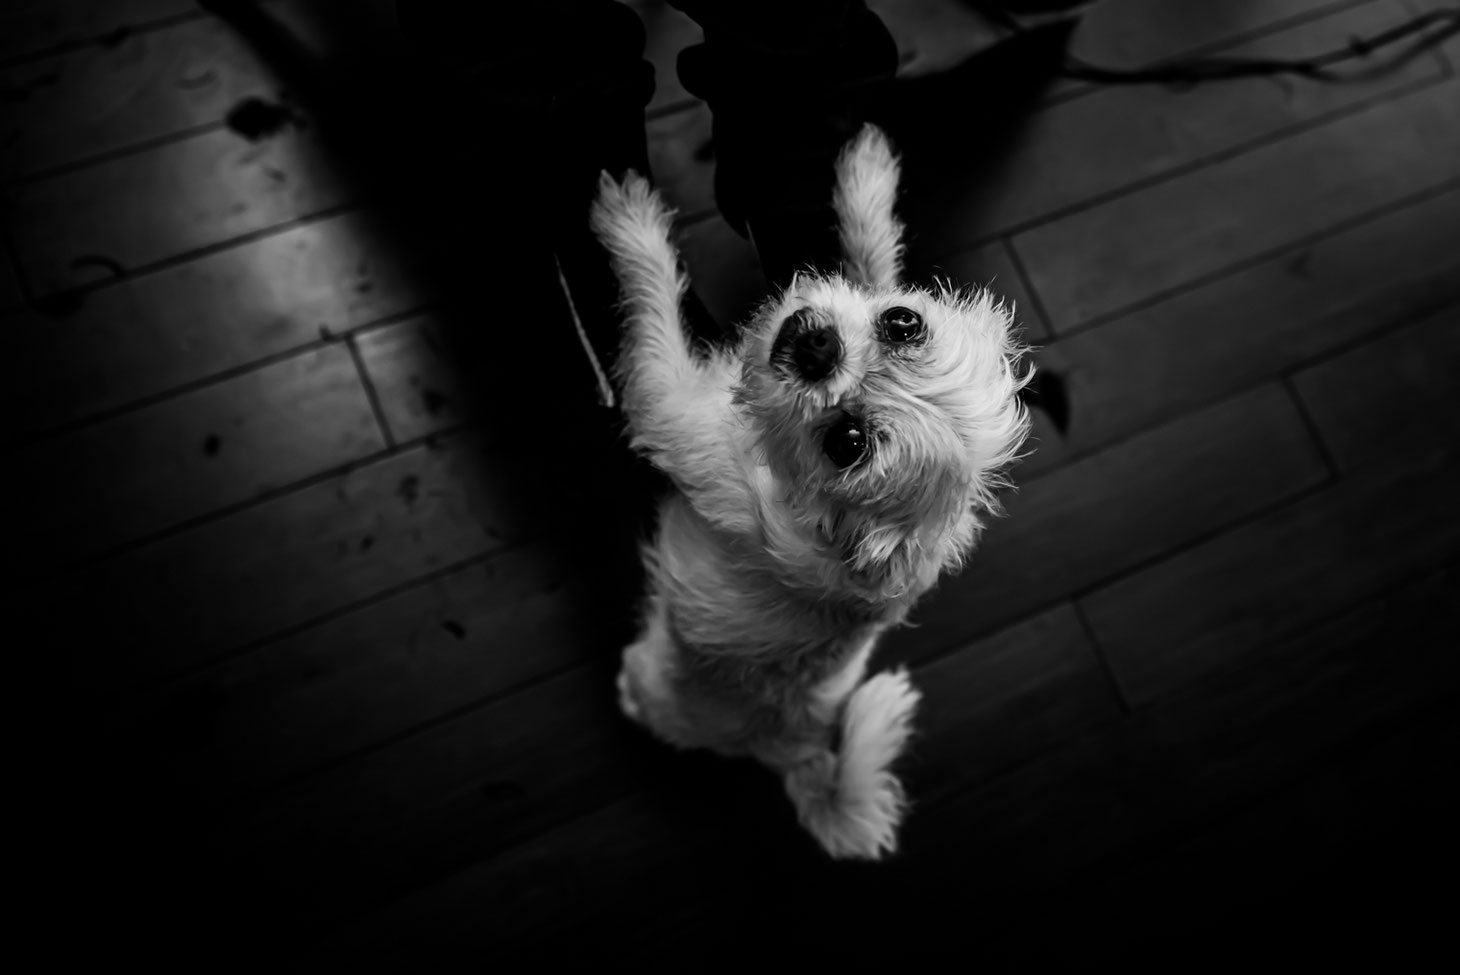 Black and white photo of a dog taken from above. Dog's front paws are on child's legs as he tries to get picked up. Pieces of hair are on the floor around the dog.